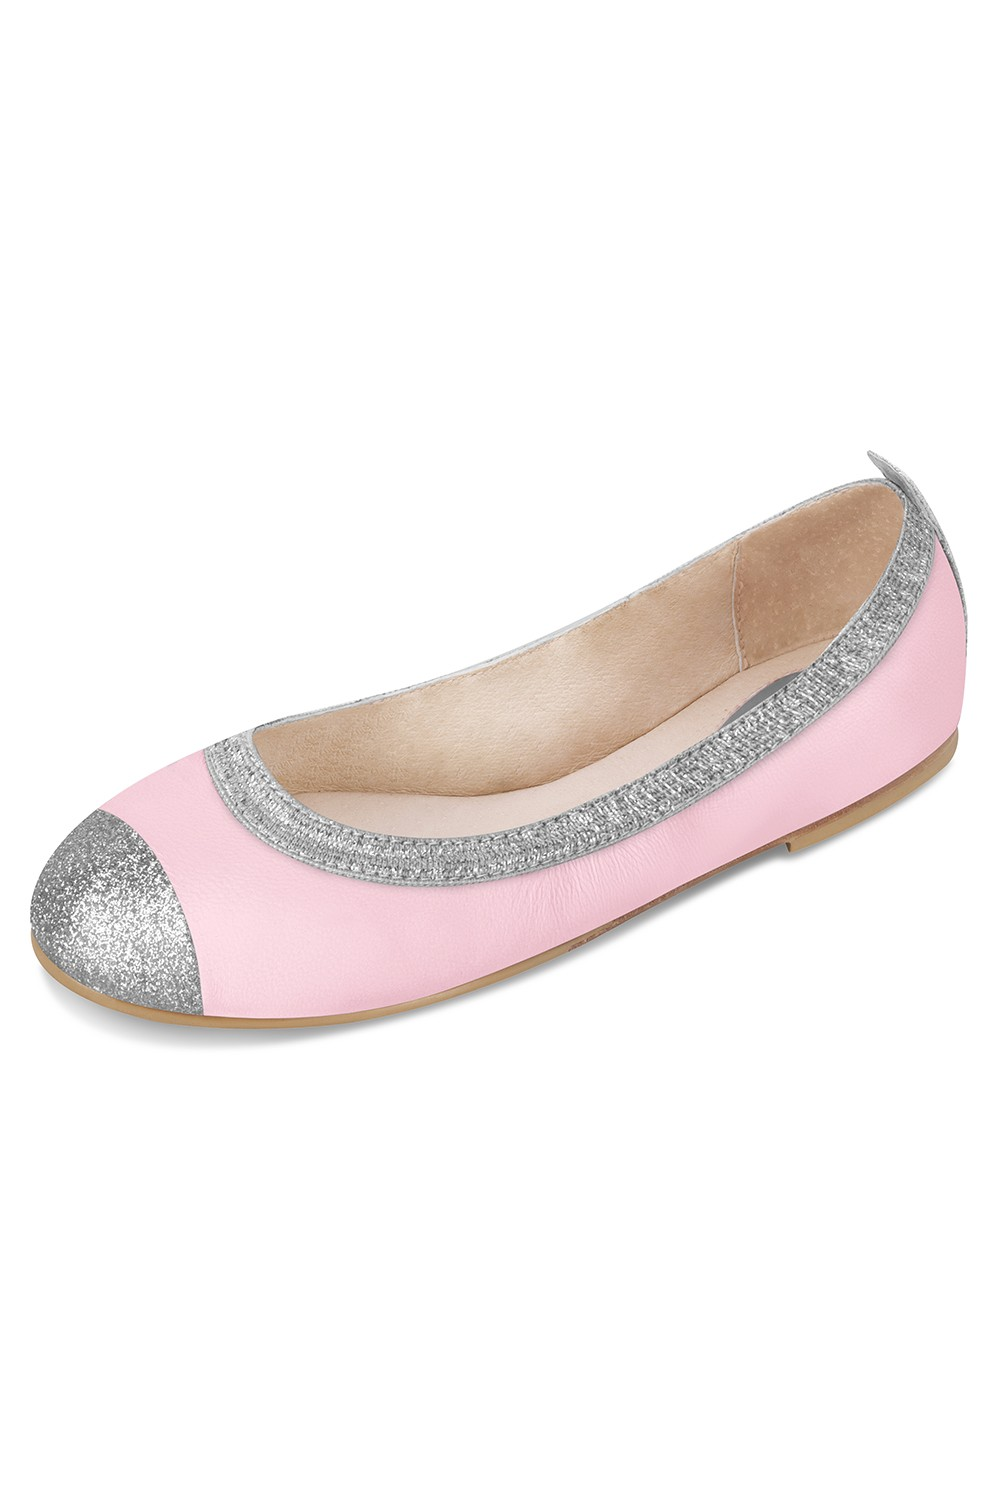 Crystelle - Mädchen Girls Fashion Shoes